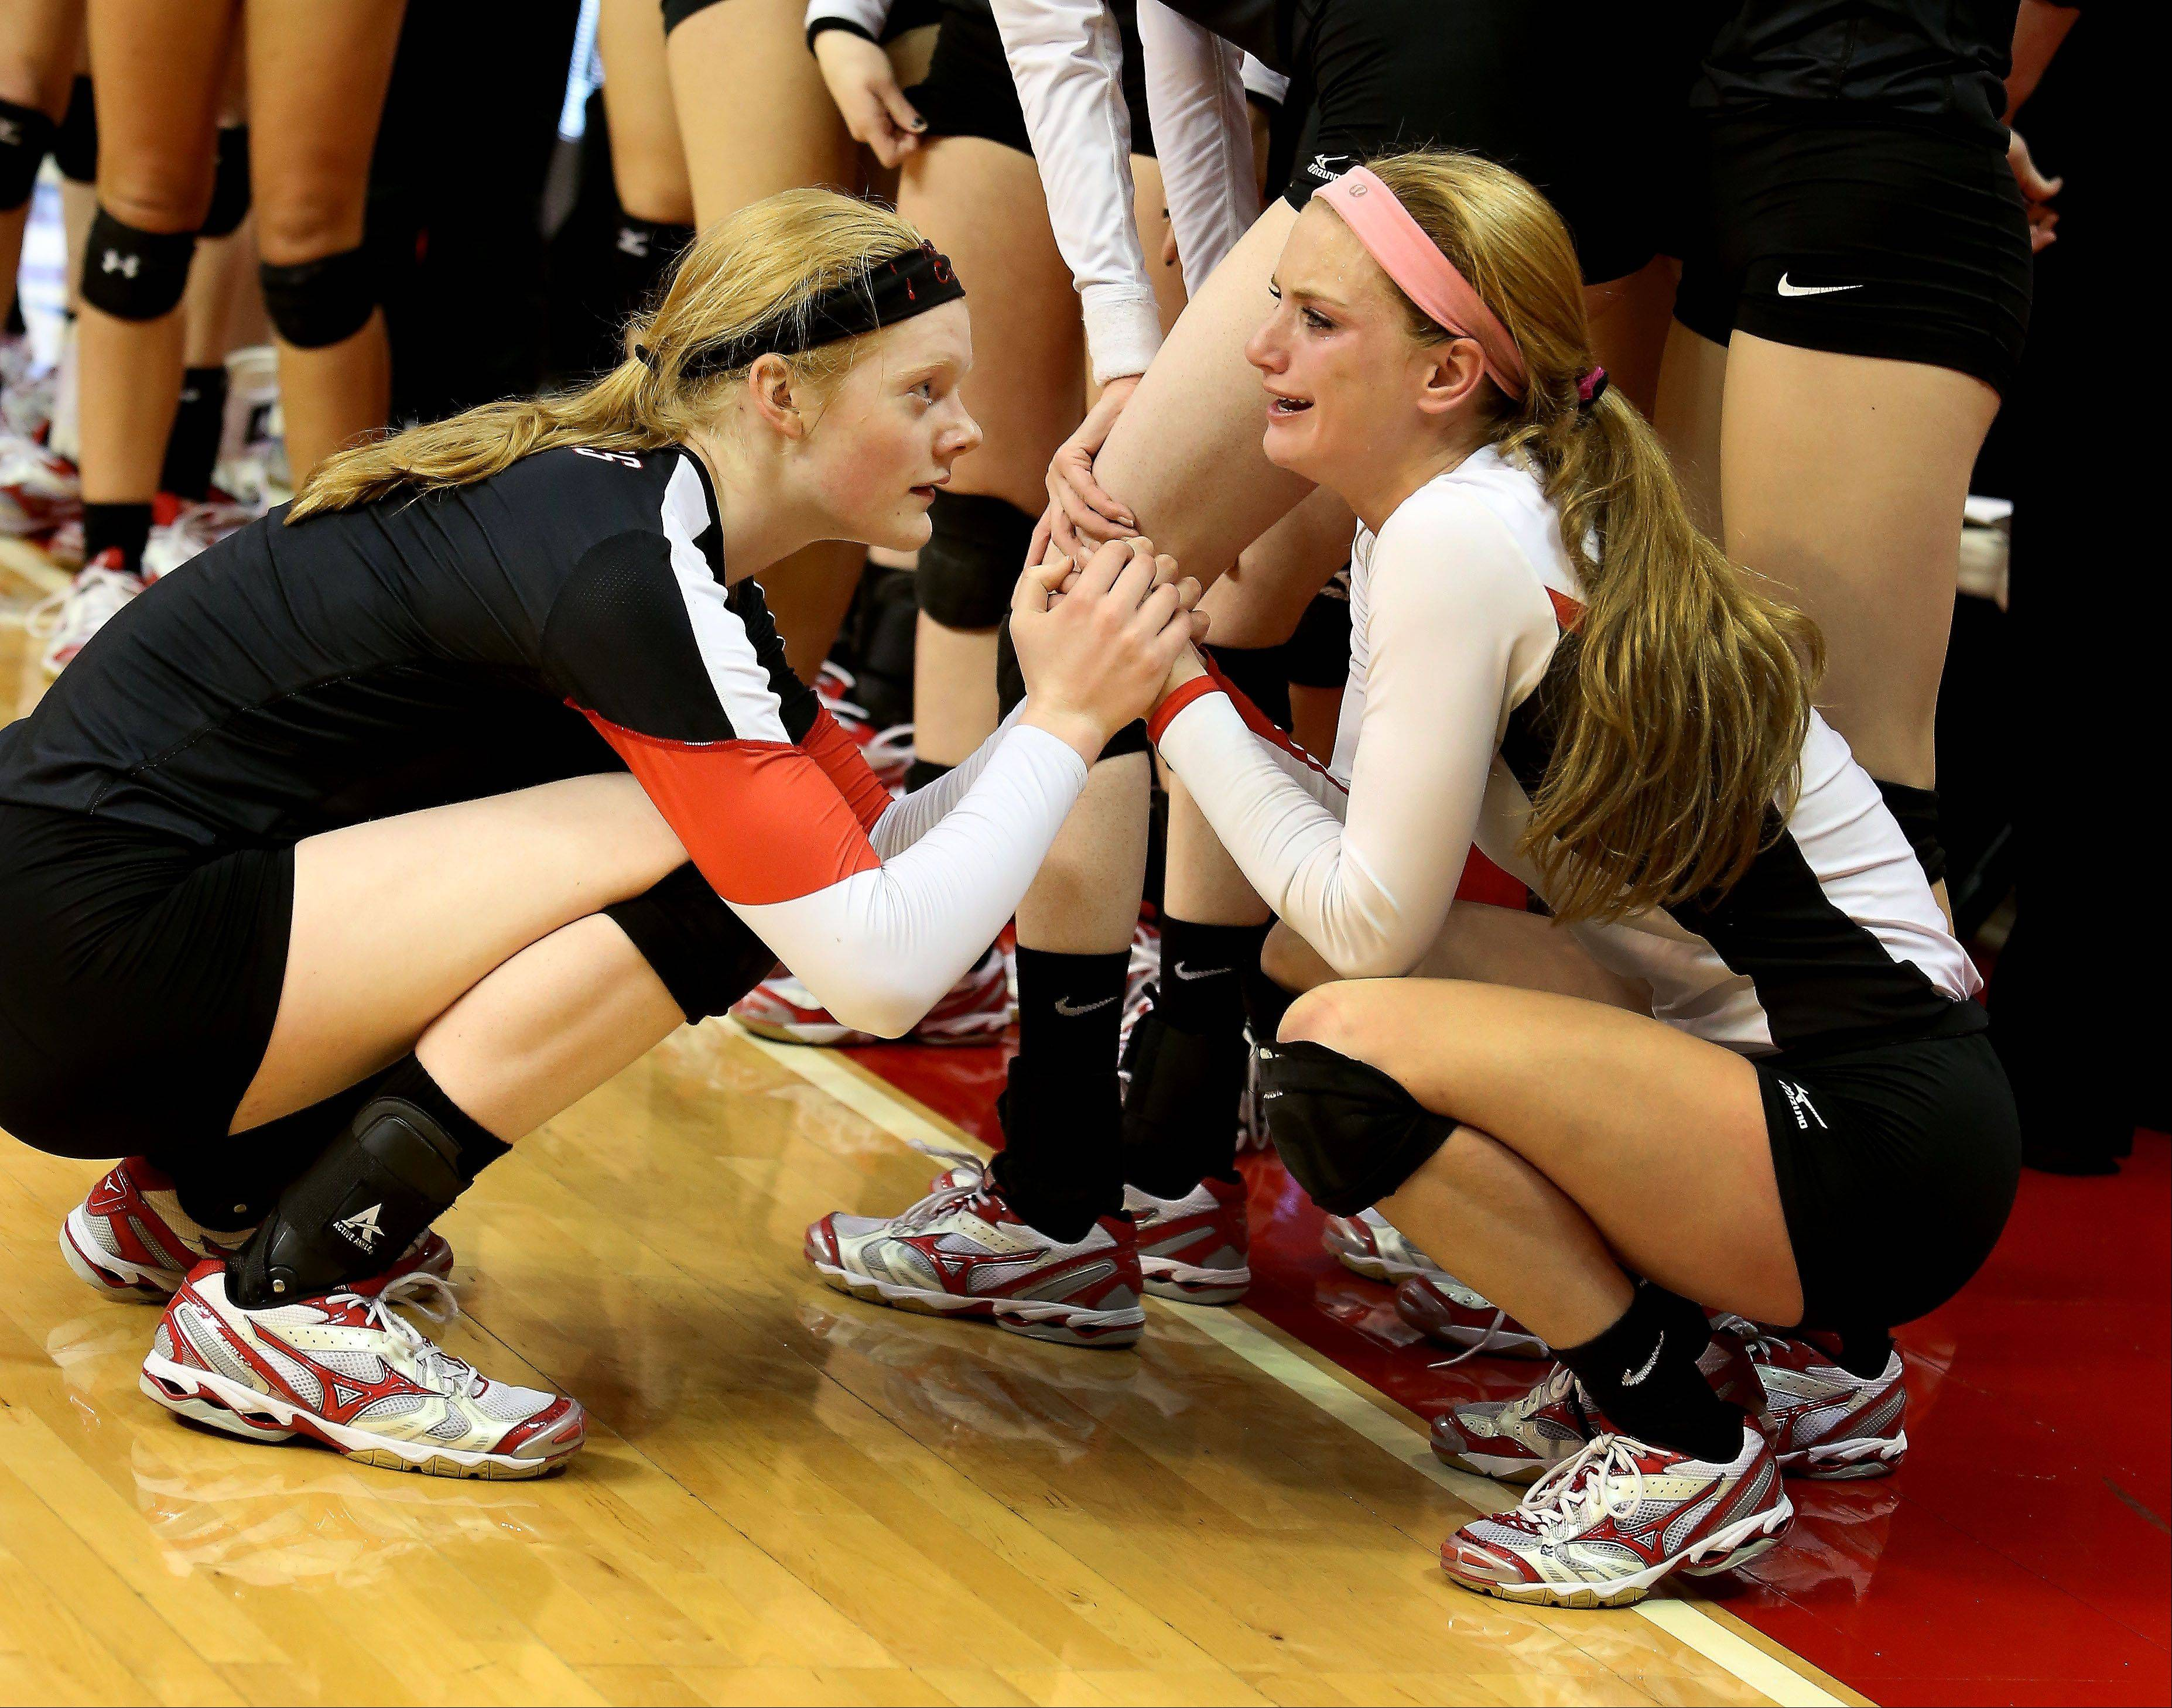 Images: Benet vs. Mother McAuley, 4A State Volleyball Finals